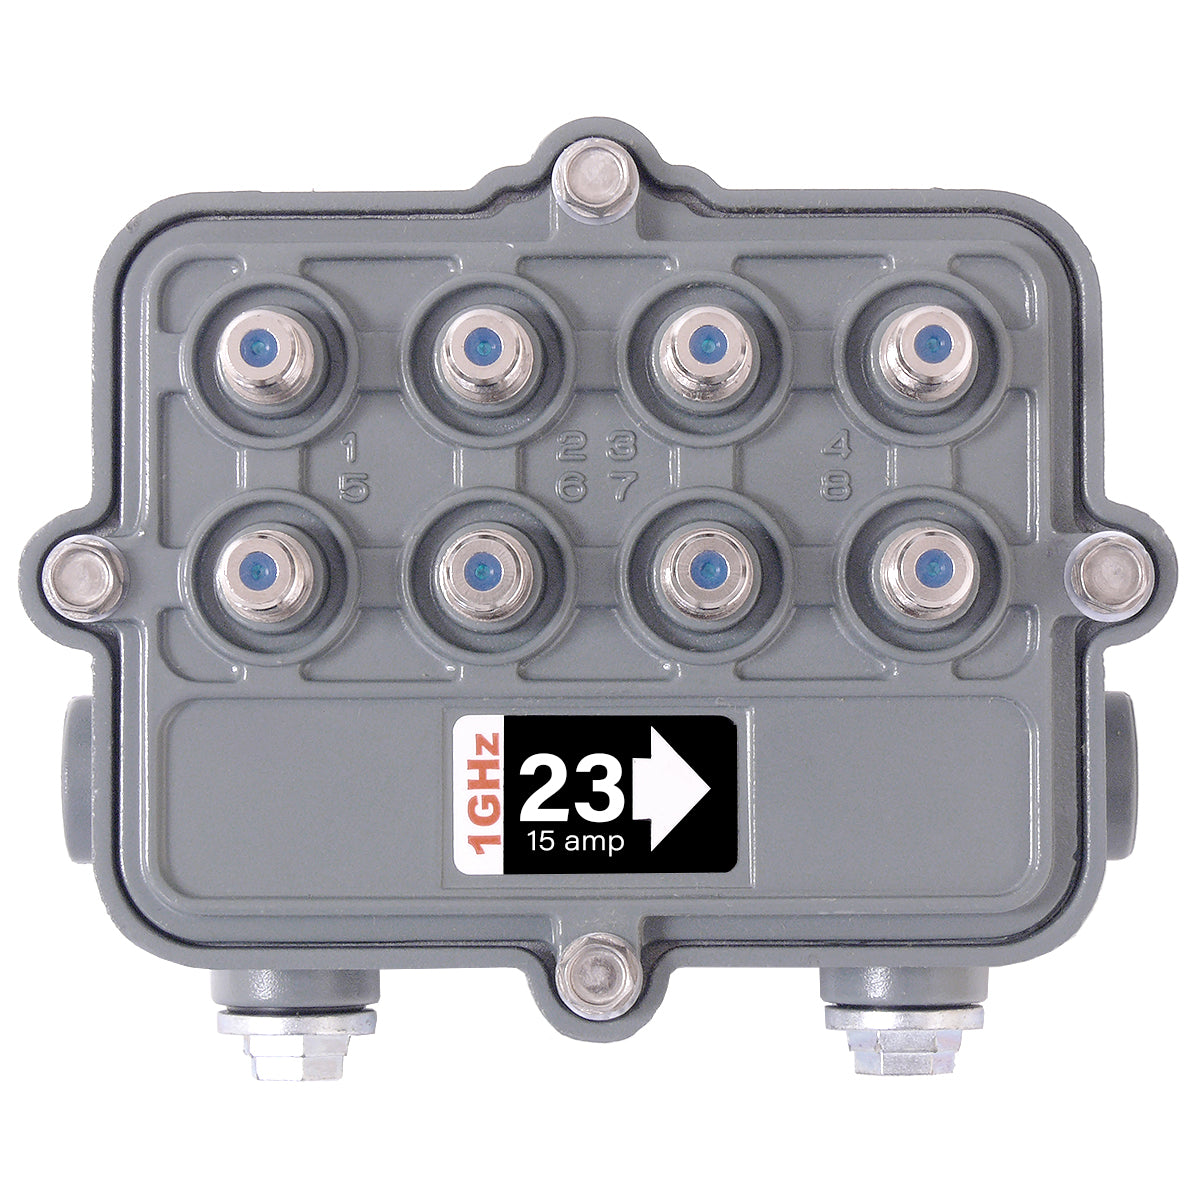 SB-8/23G/SR 1GHz Outdoor Hardline Multitap 8 Way 23dB